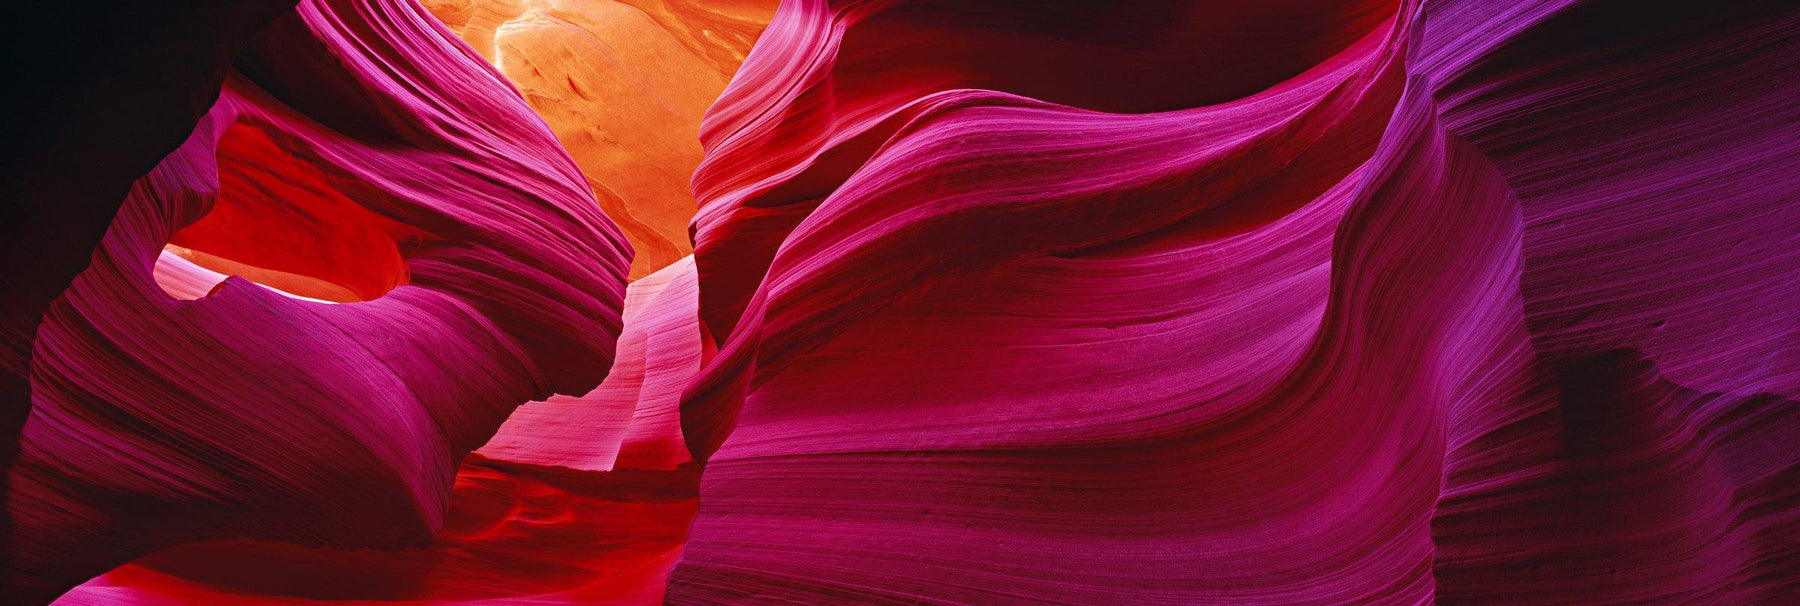 Flowing sandstone walls of the slot canyons in Antelope Canyon Arizona